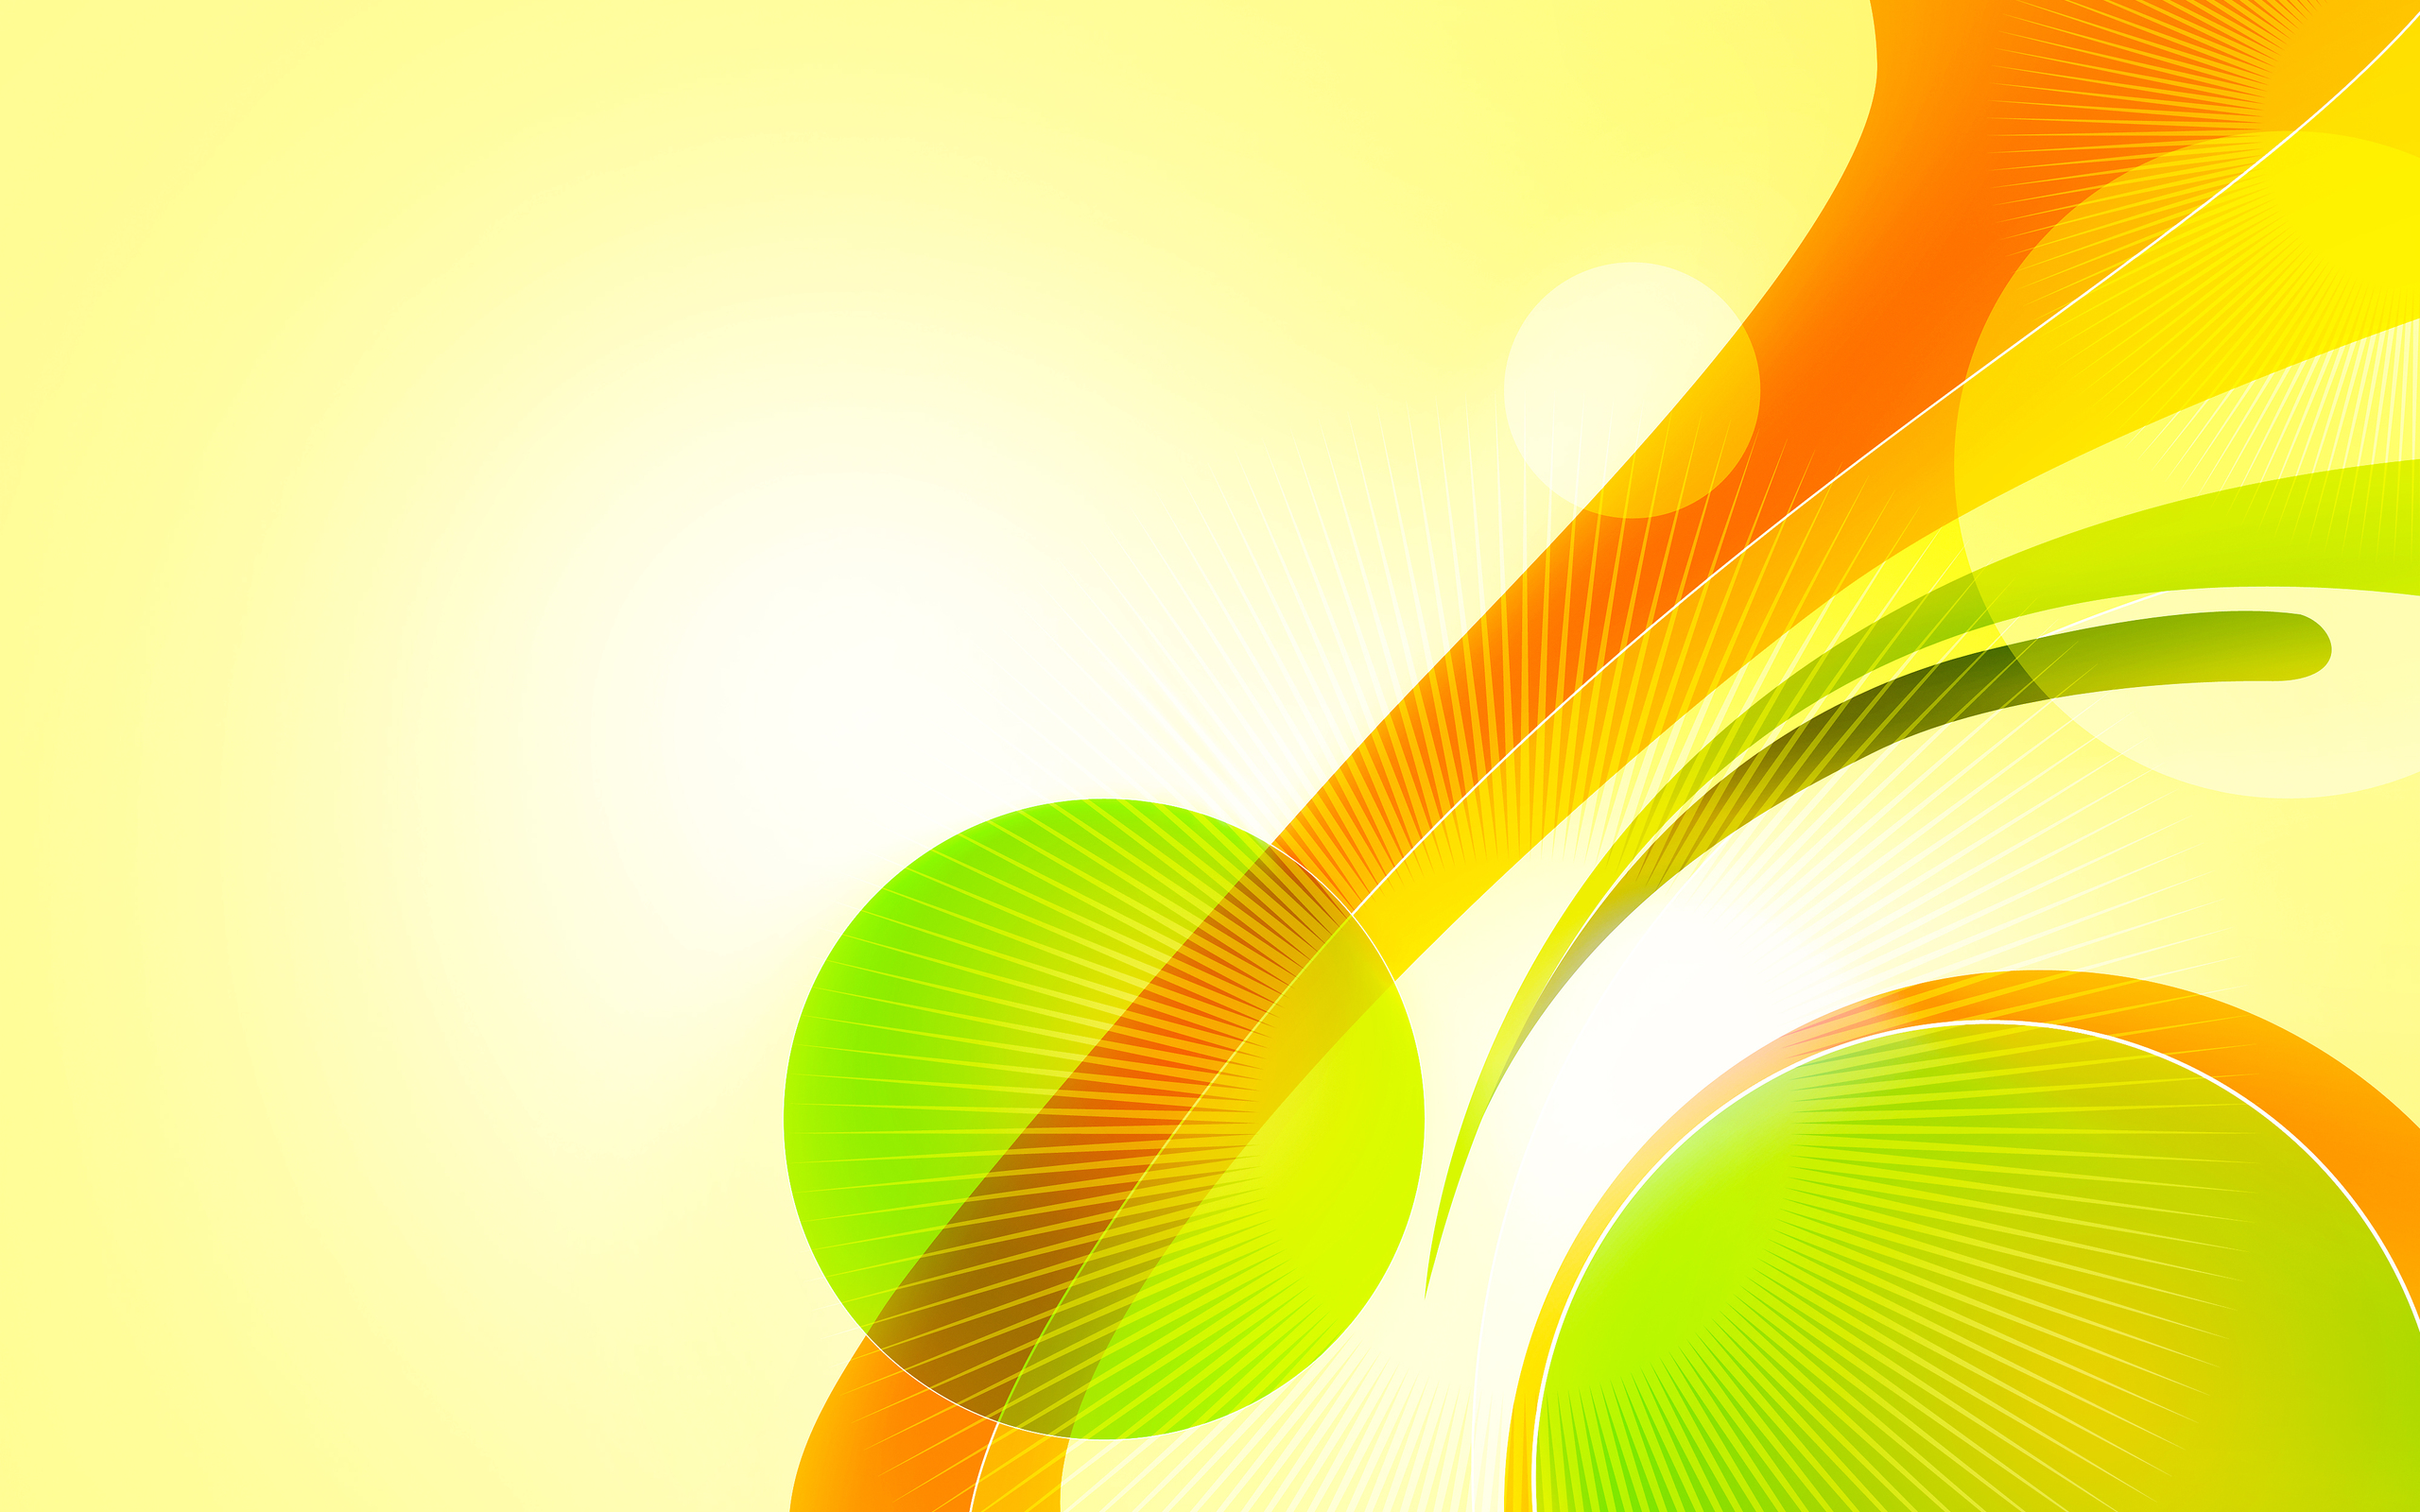 Abstract Artistic Wallpaper · Artistic Desktop Wallpaper · Artistic Wallpaper ...